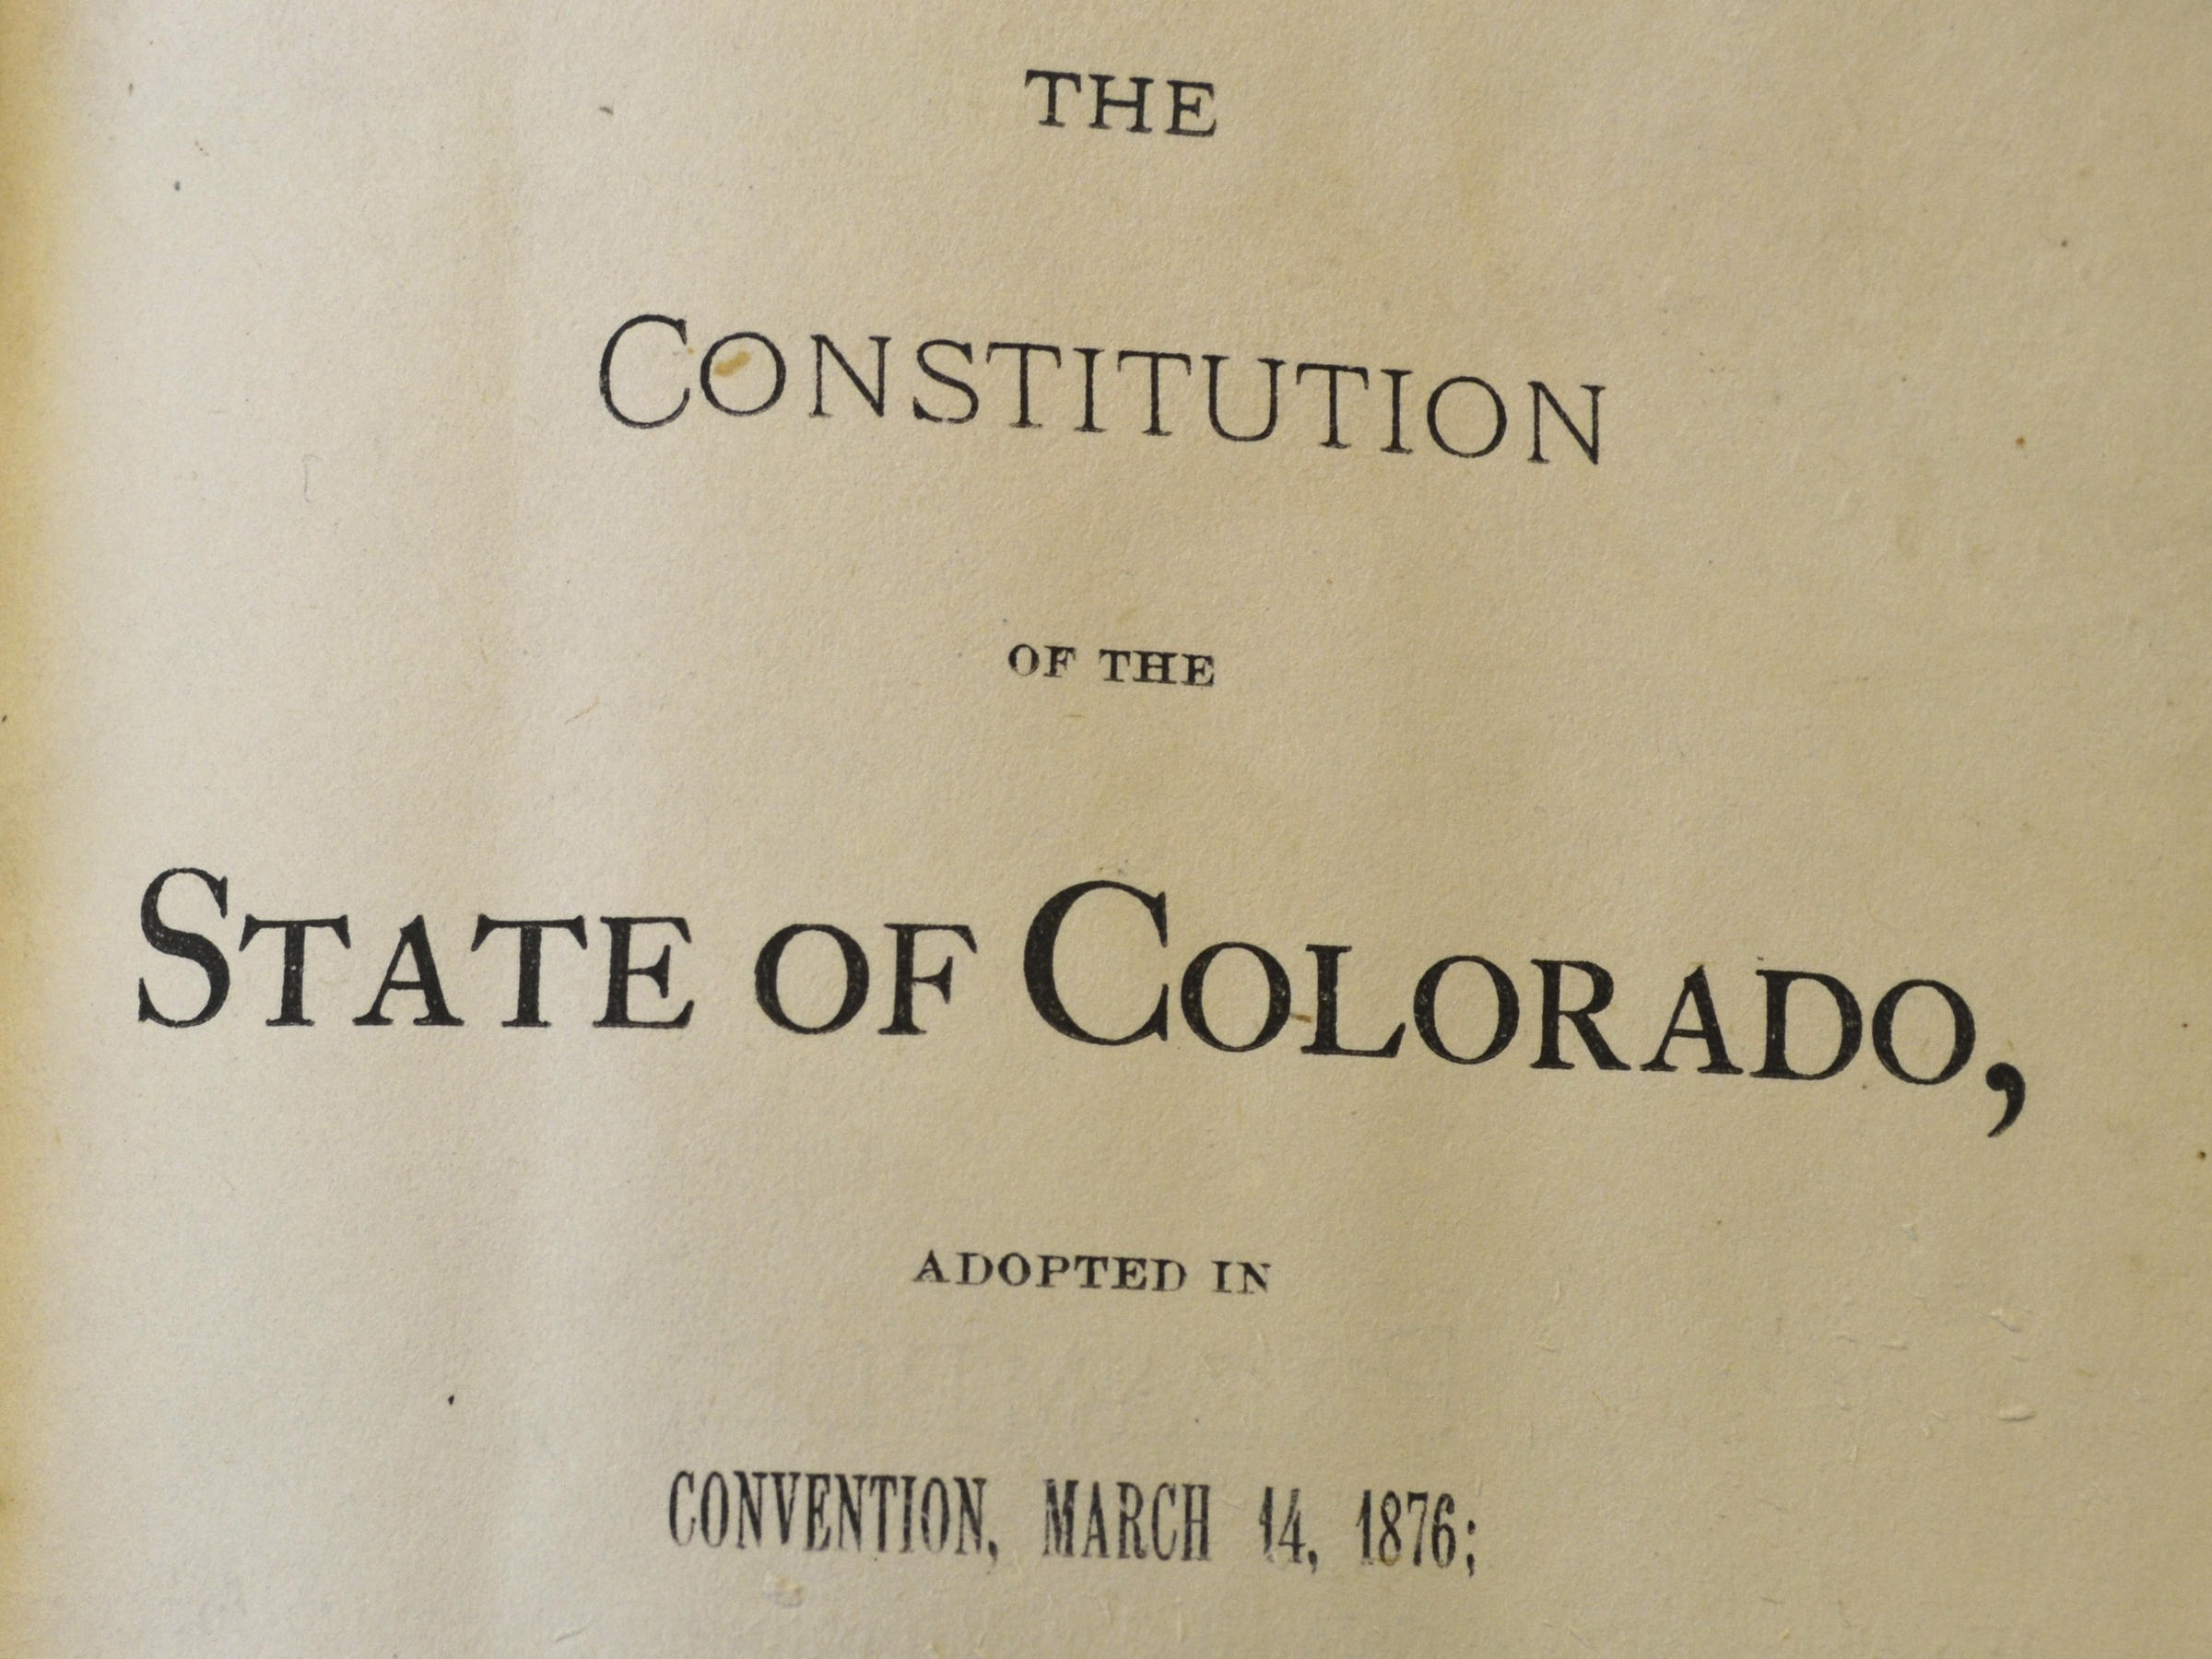 Colorado Votes To Abolish Slavery 2 Years After Similar